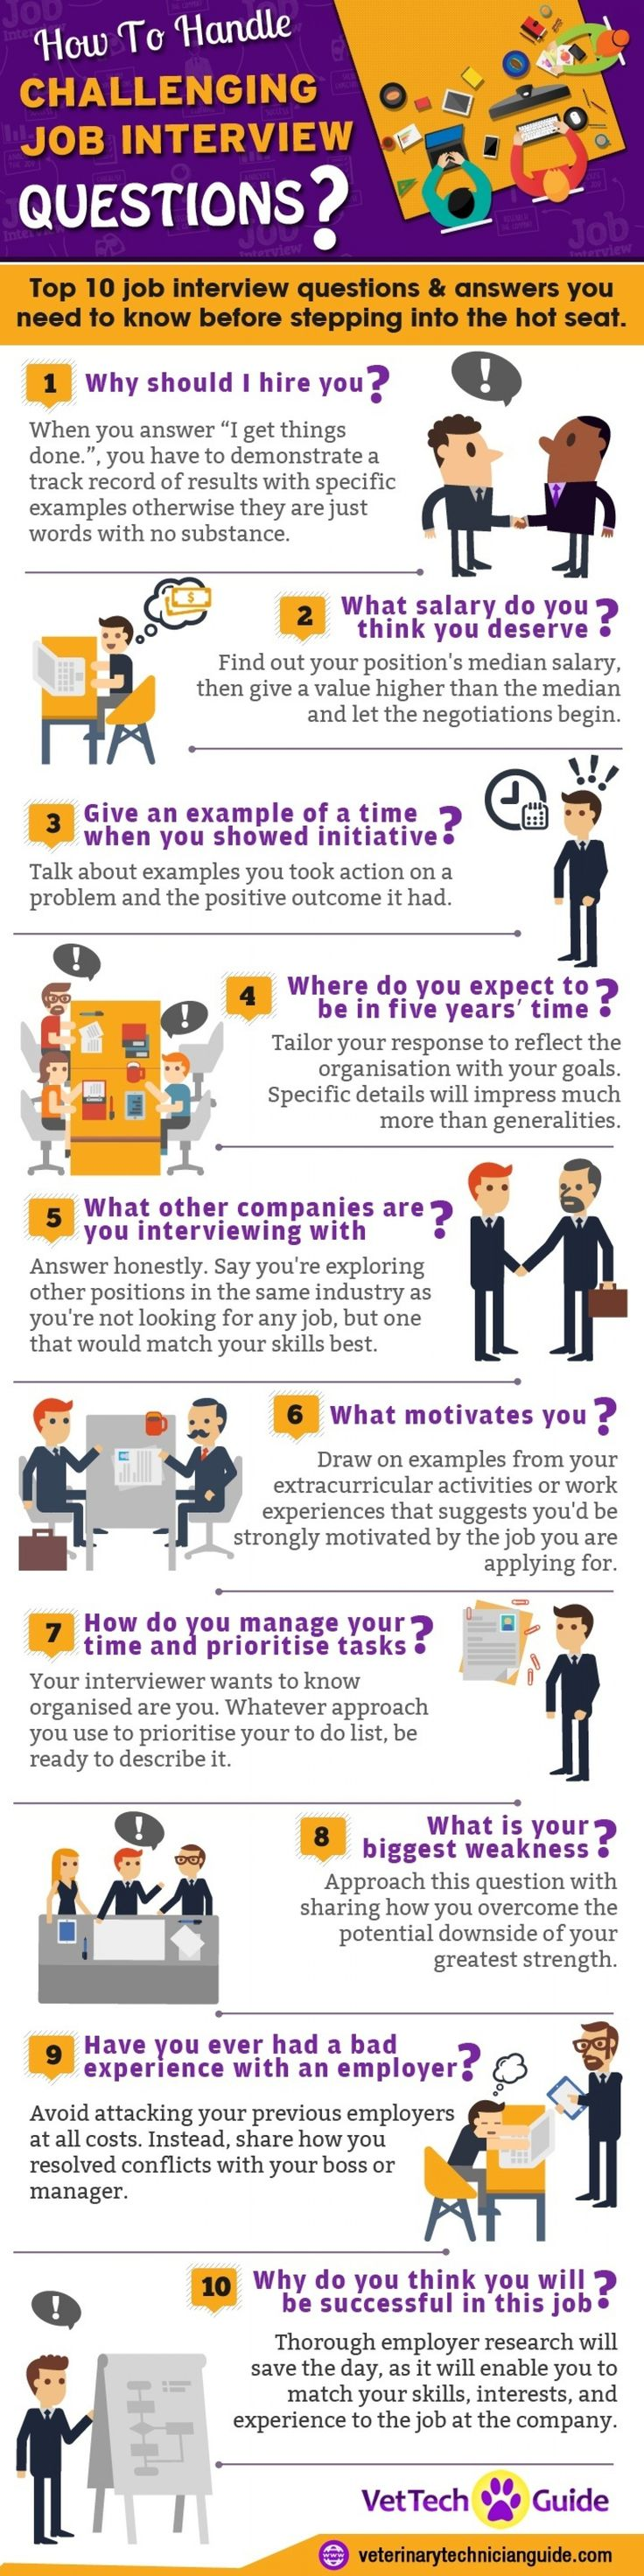 How to Answer Challenging Job interview Questions [INFOGRAPHIC] - Learnist.org